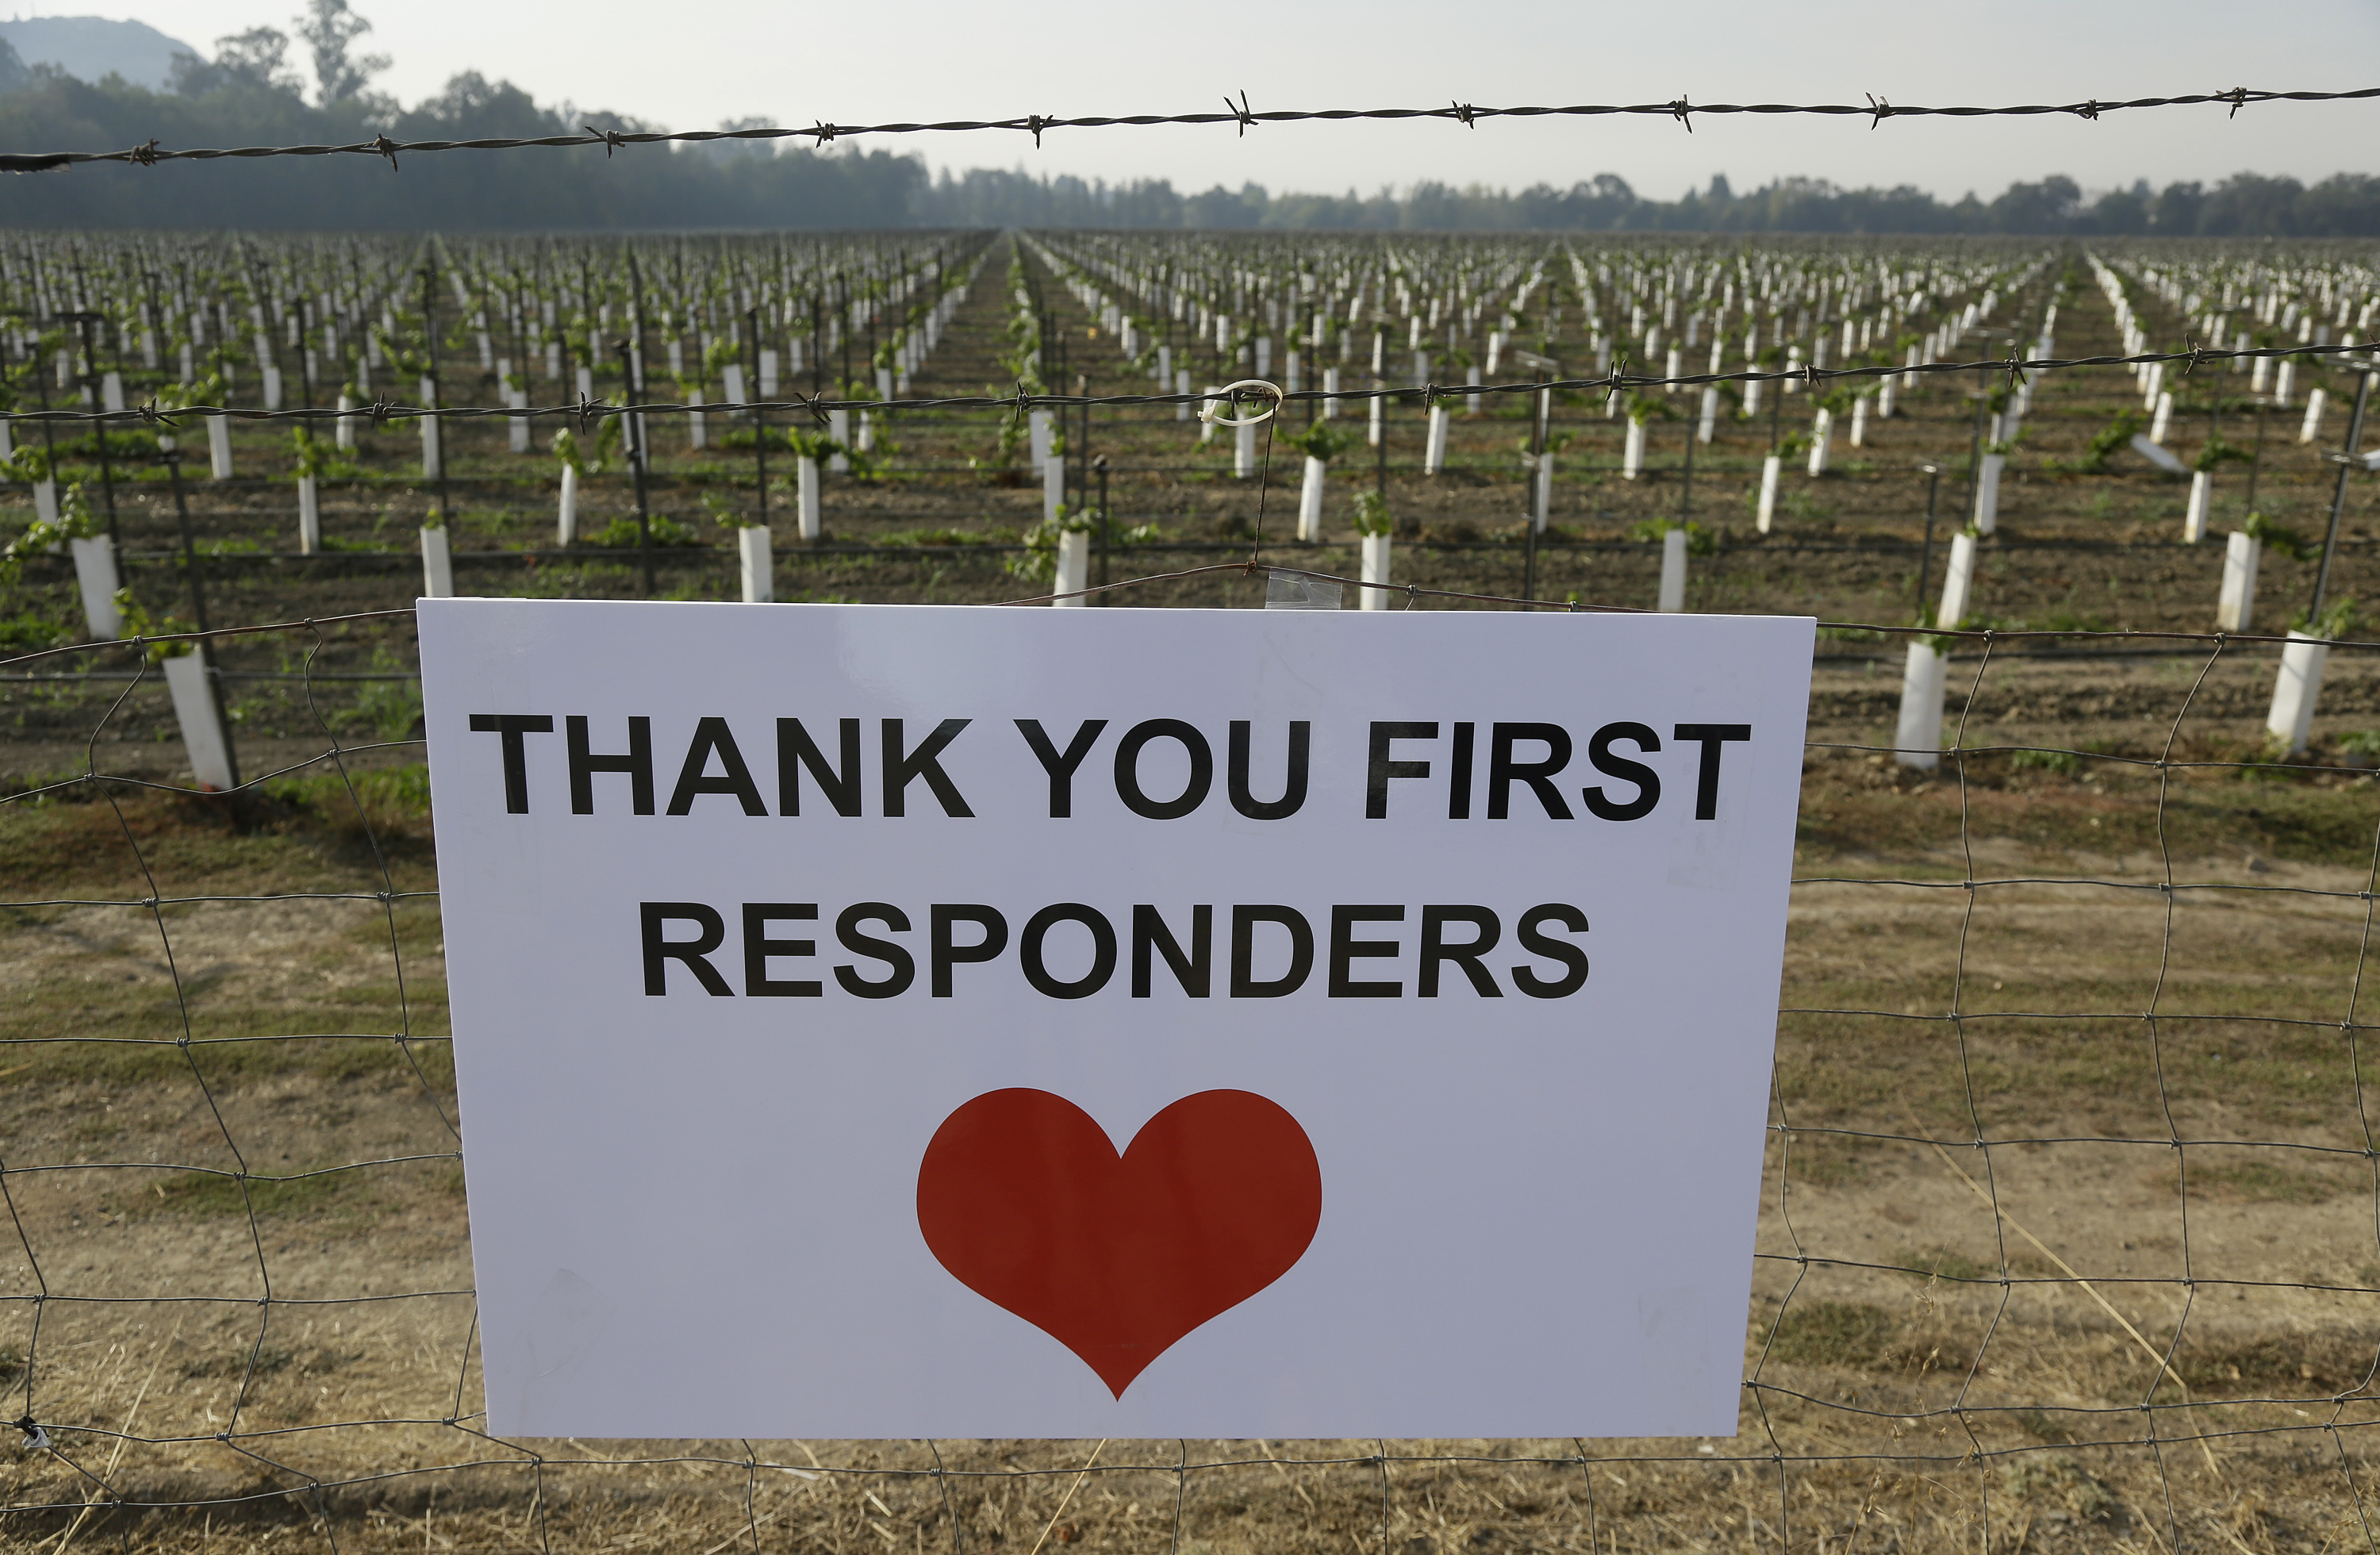 "<div class=""meta image-caption""><div class=""origin-logo origin-image none""><span>none</span></div><span class=""caption-text"">A sign thanking first responders hangs by a newly planted vineyard Monday, Oct. 16, 2017, in Napa, Calif. (Eric Risberg/AP Photo)</span></div>"